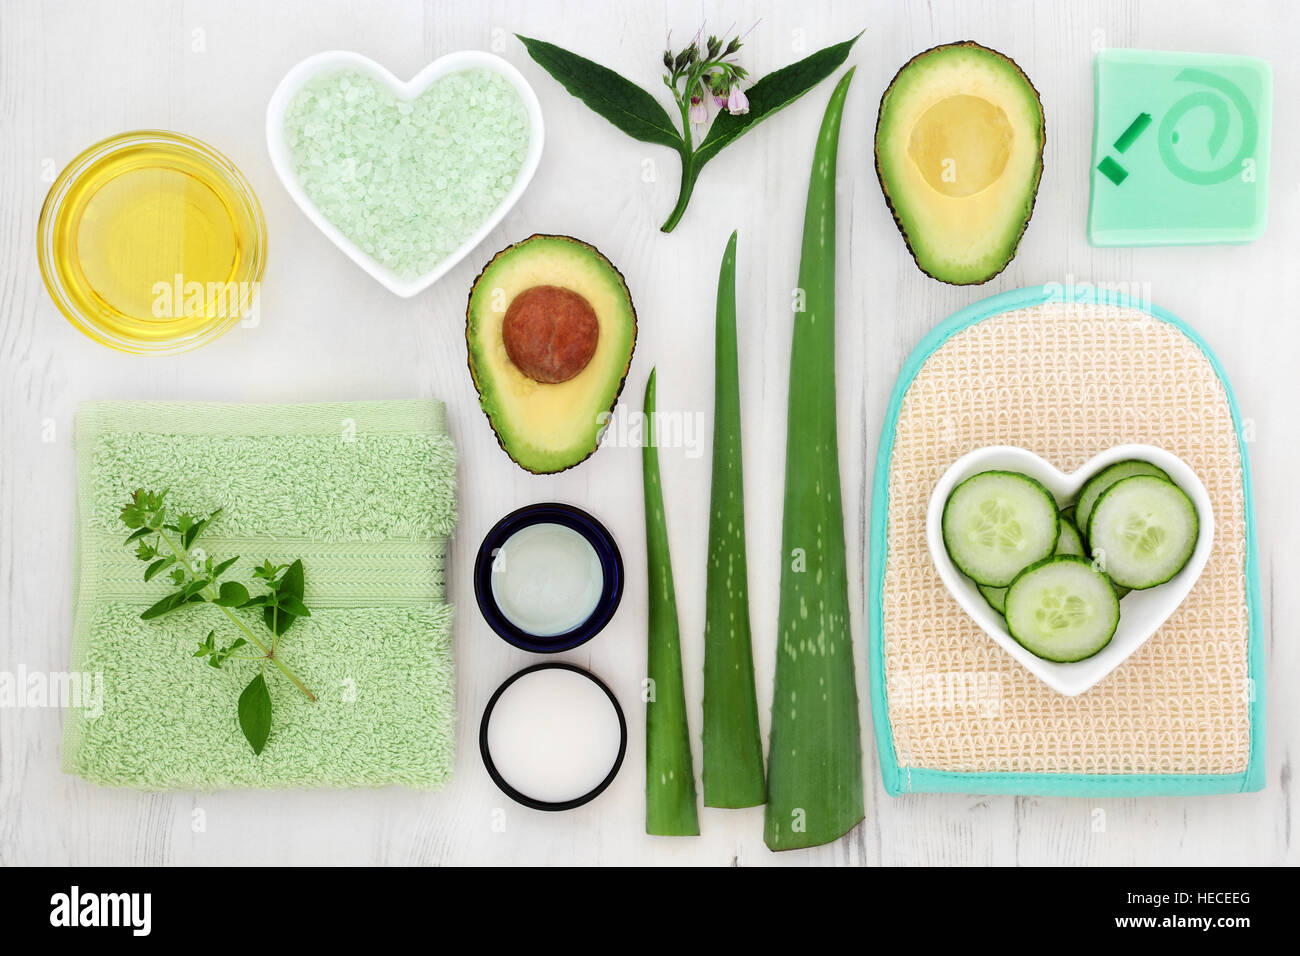 Skincare ingredients to cleanse and soothe skin disorders. - Stock Image